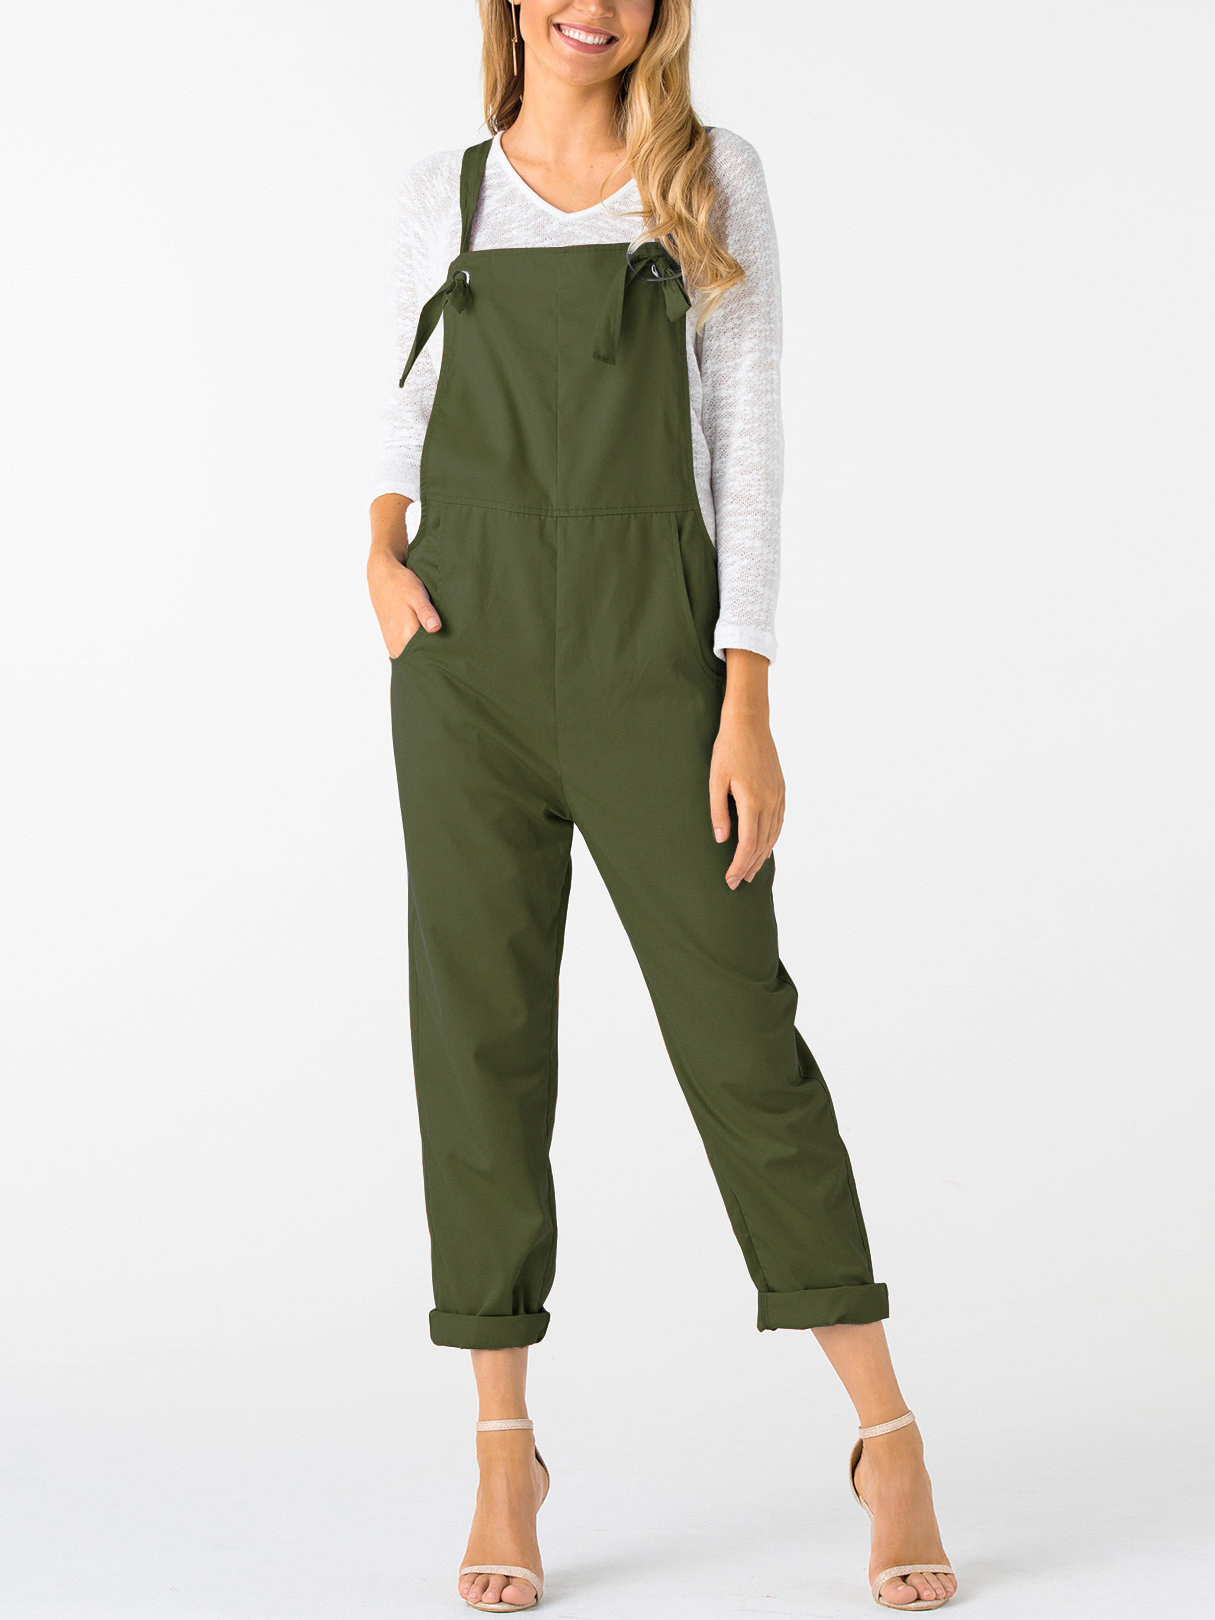 Army Green Square Neck Sleeveless Overall Outfits